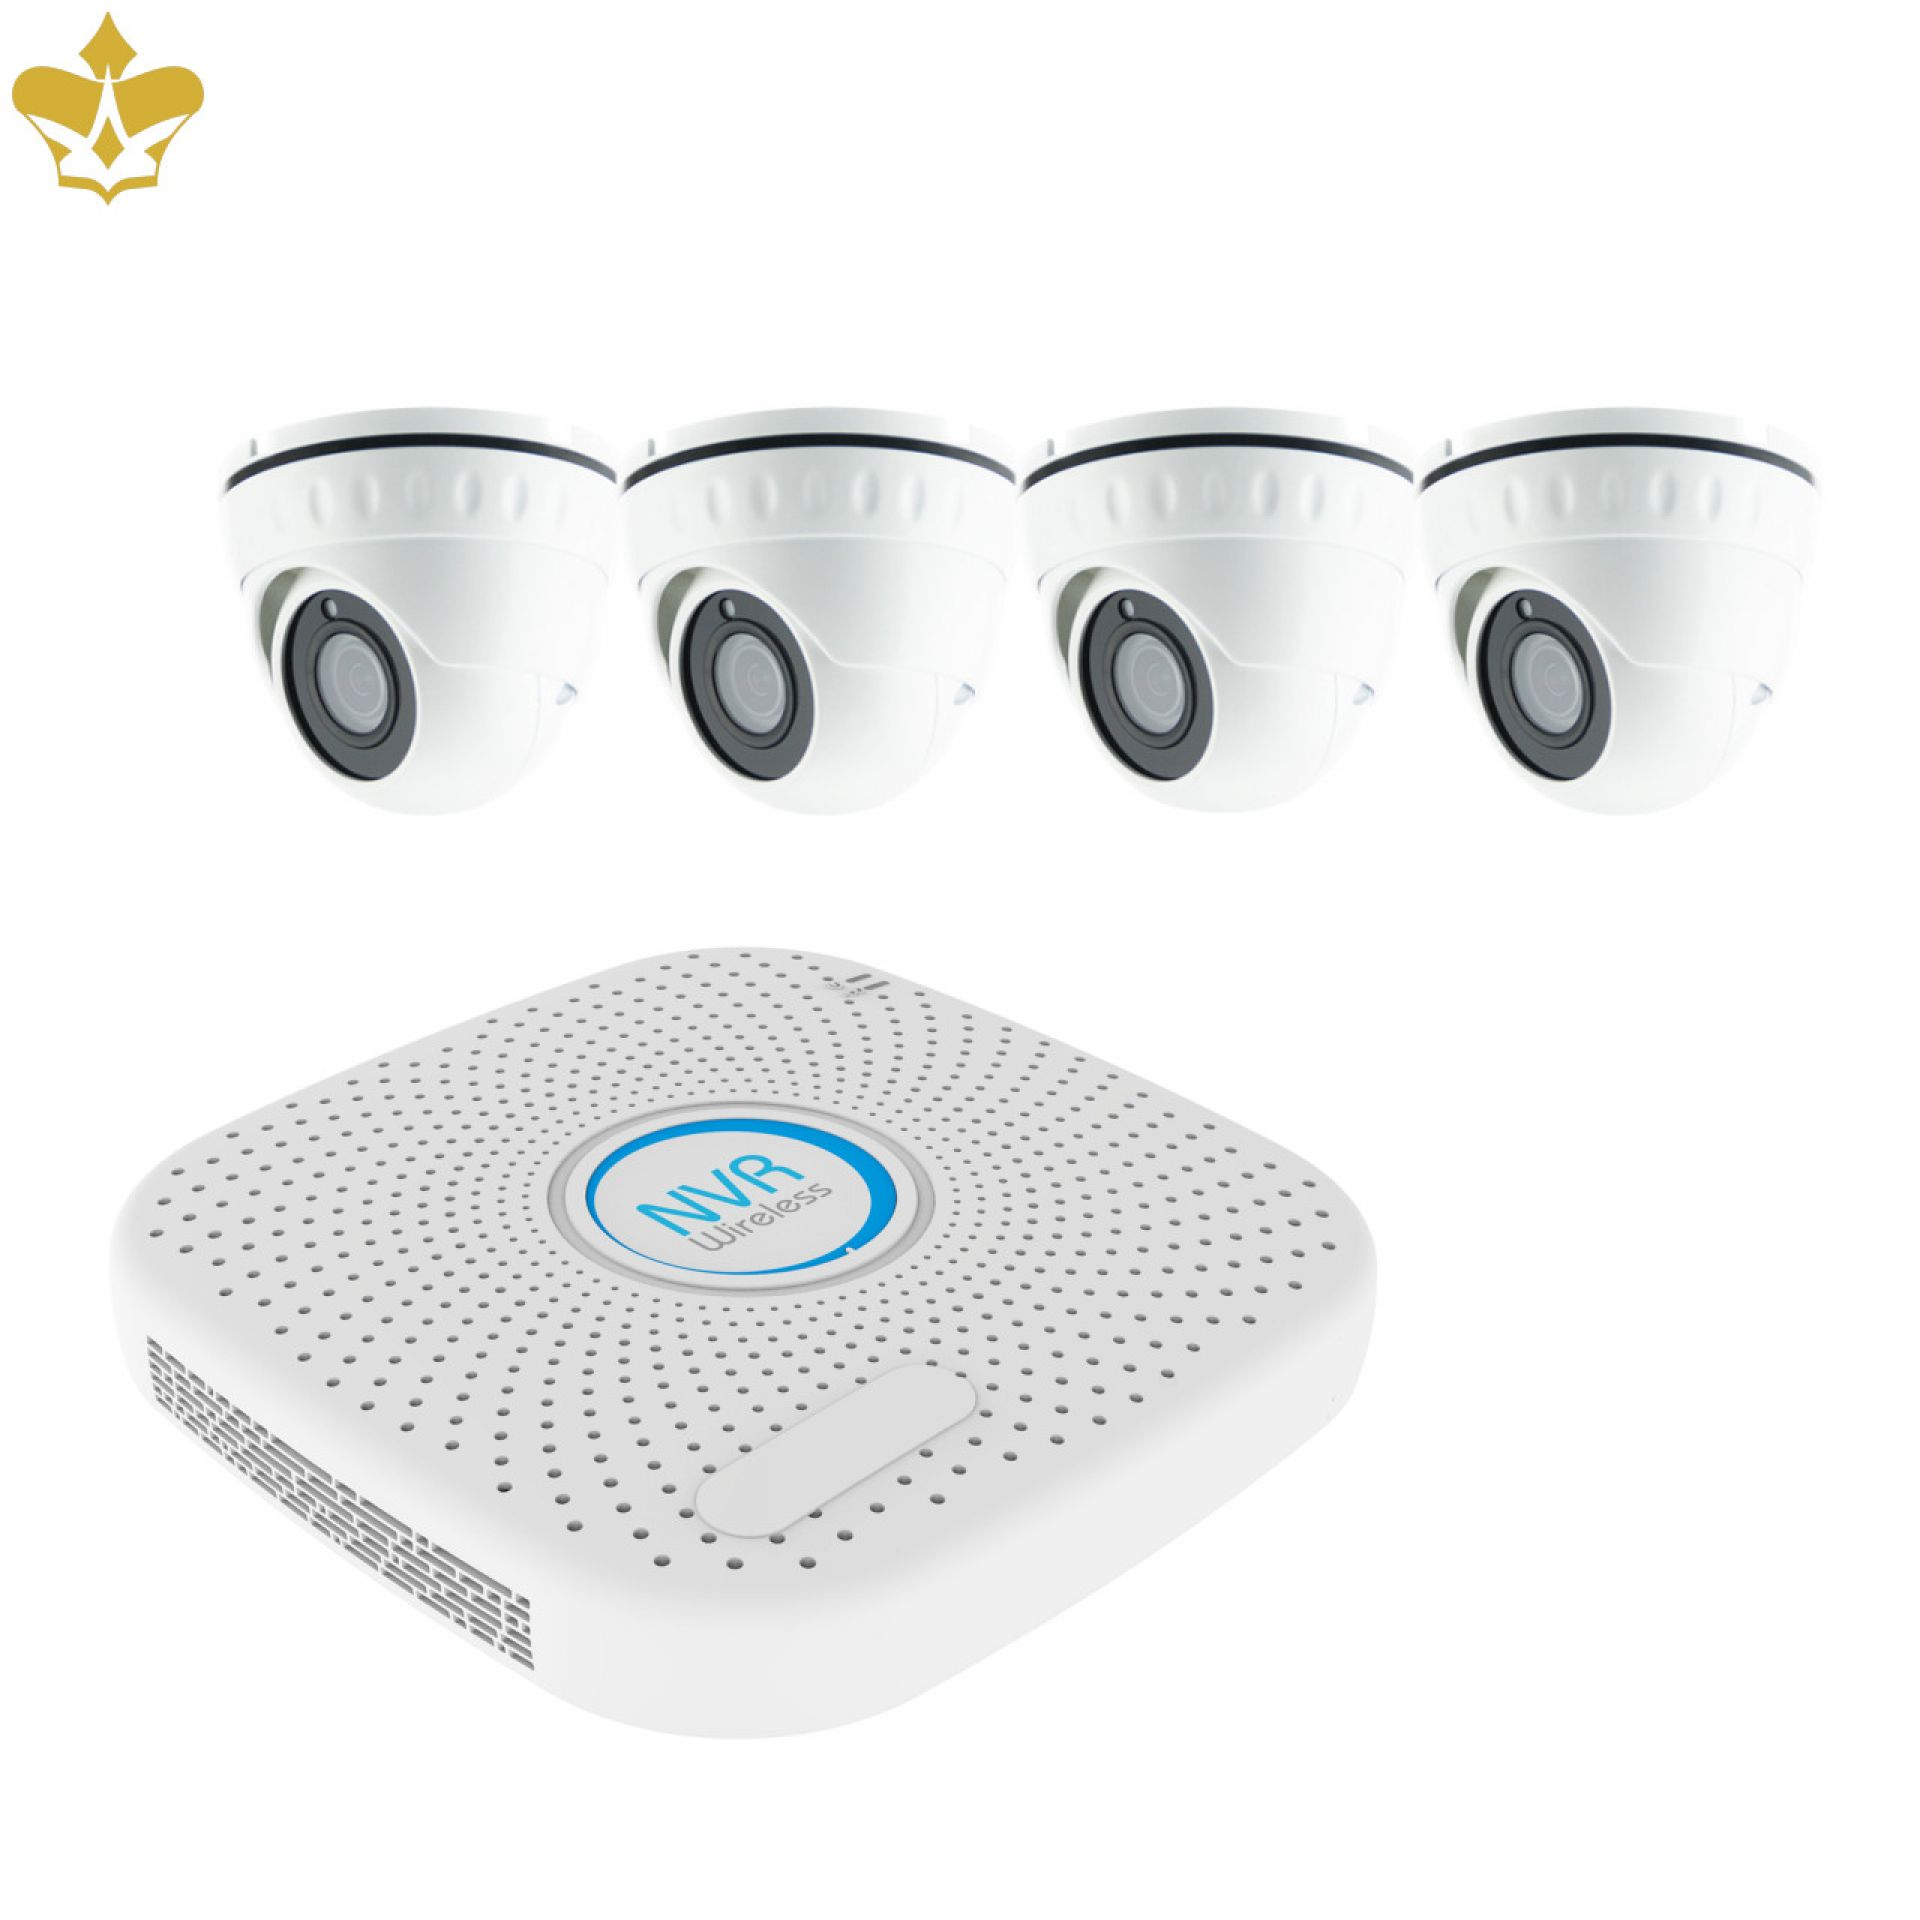 WLAN Dome Kamera Set